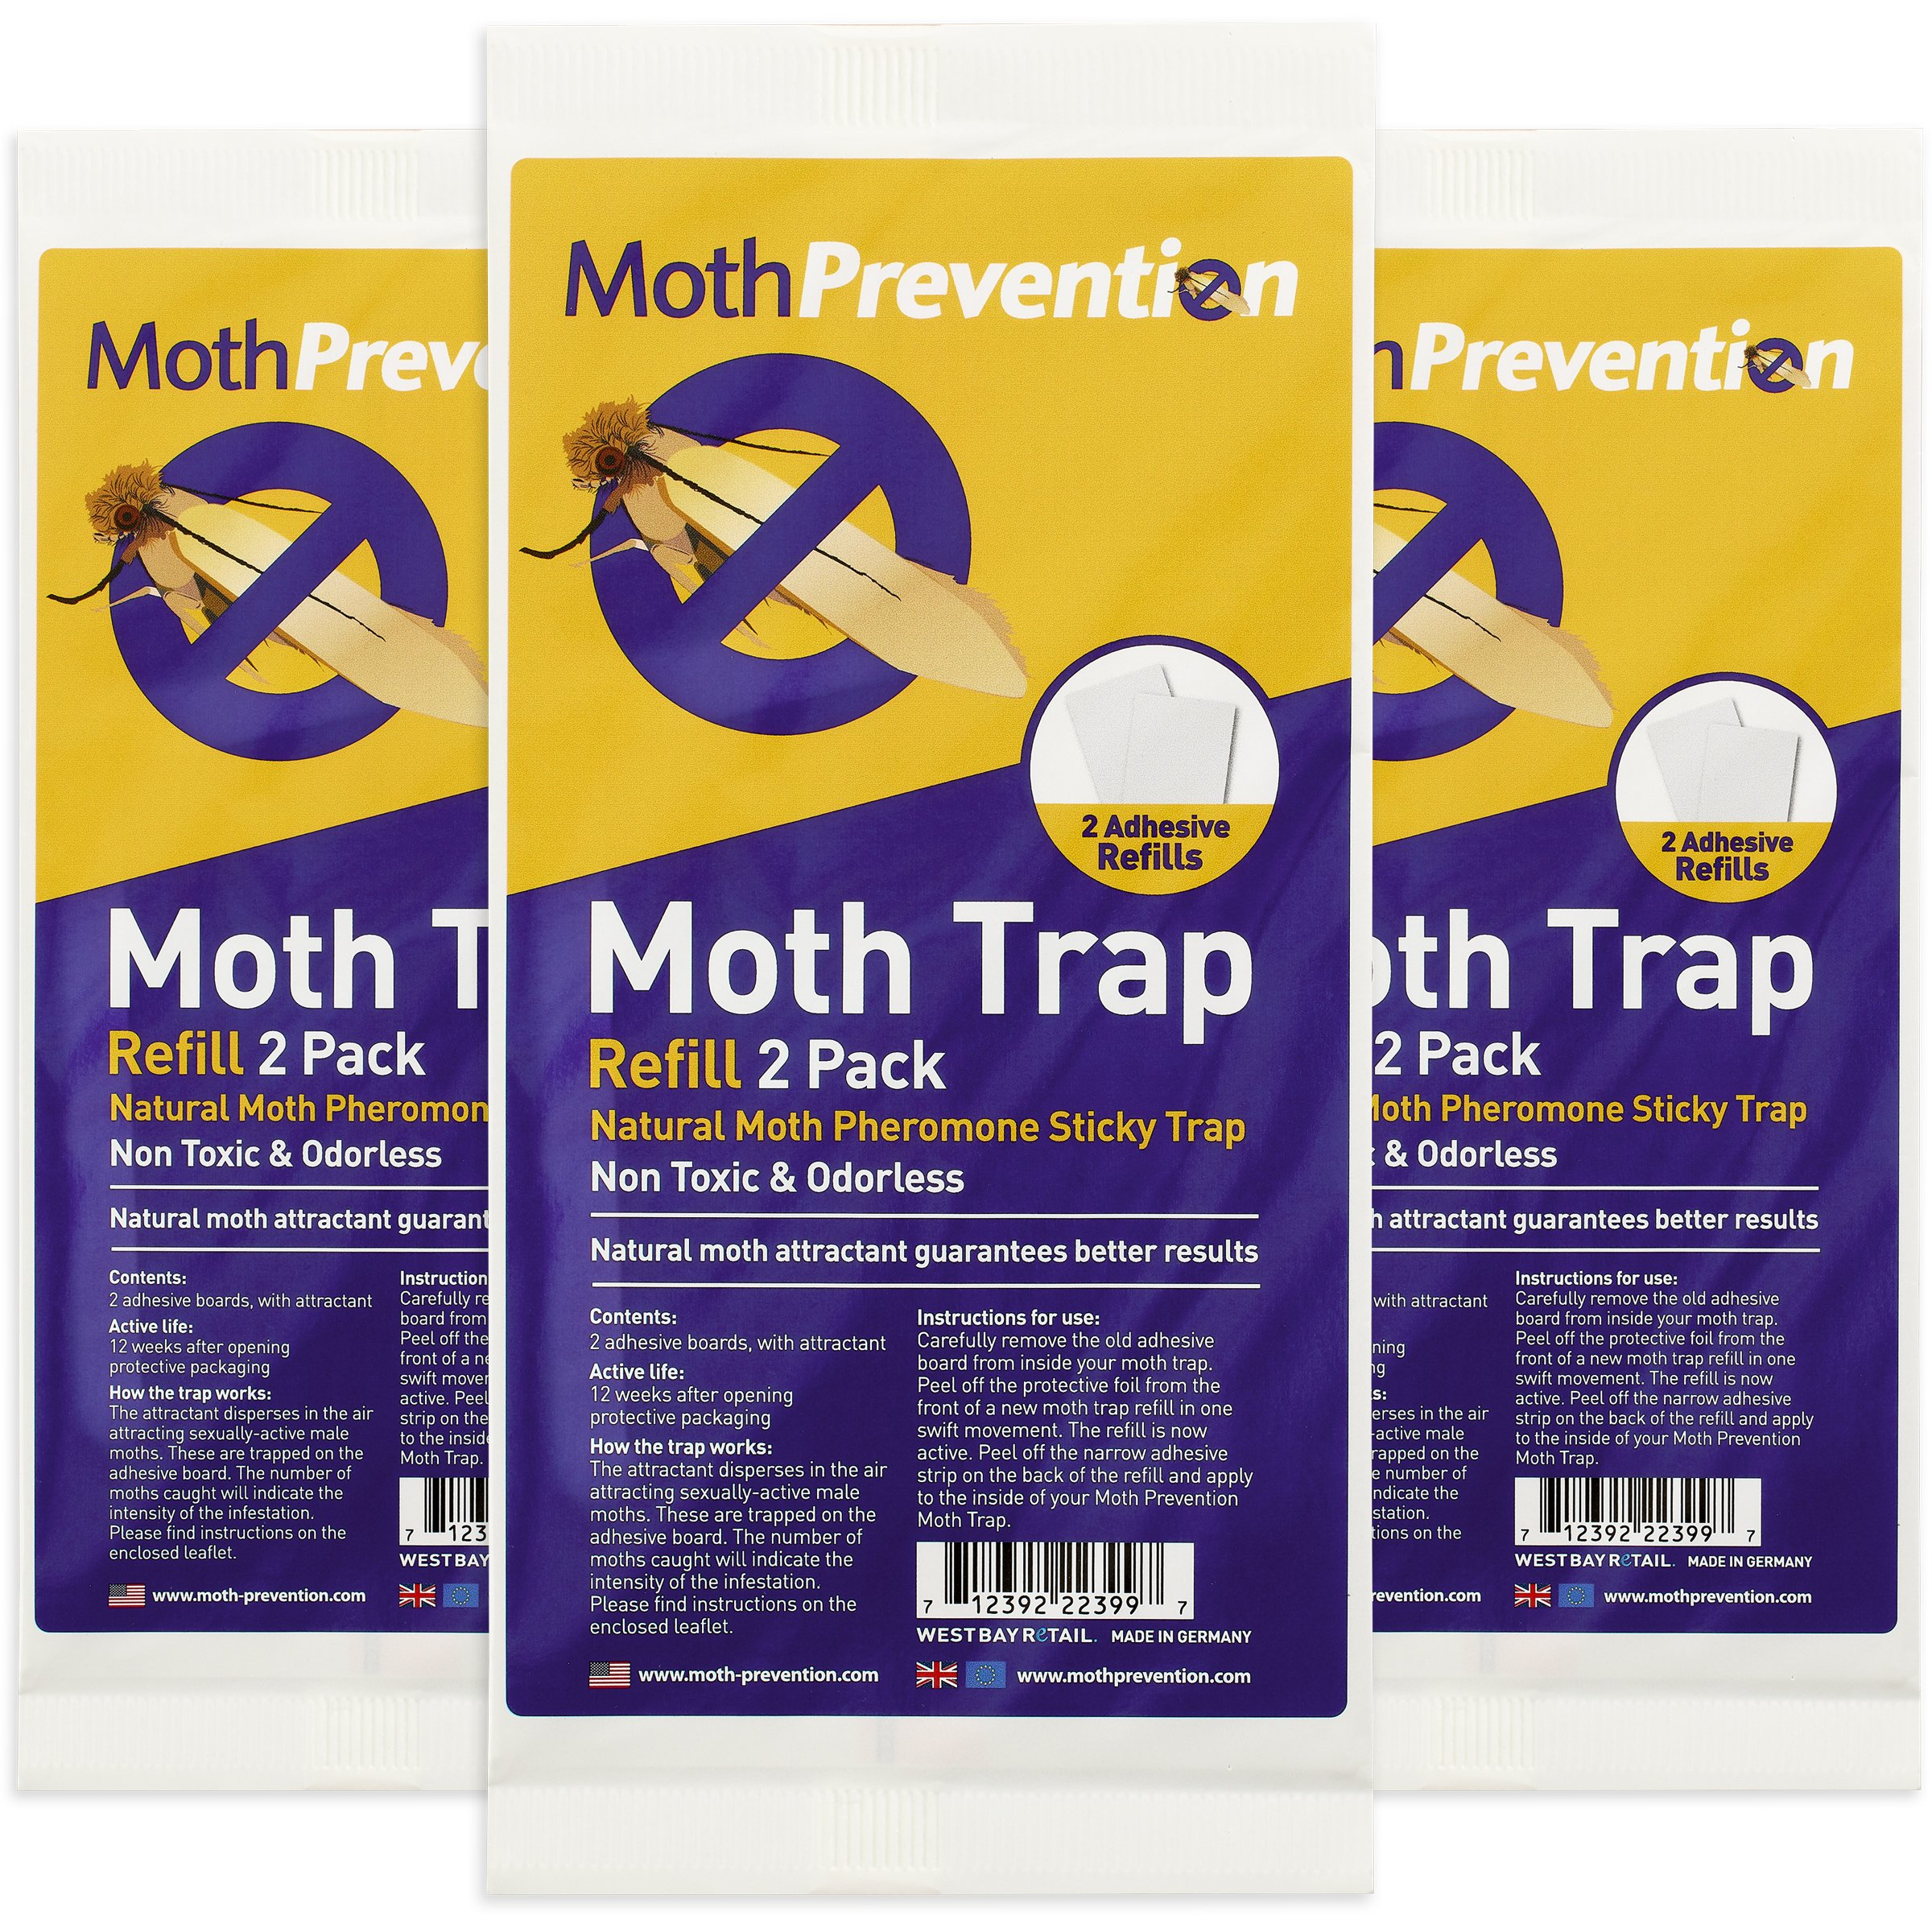 West Bay Retail POWERFUL MOTH TRAP Replacement Strips (6 Strips in Total) MothPrevention Clothes Moth Traps